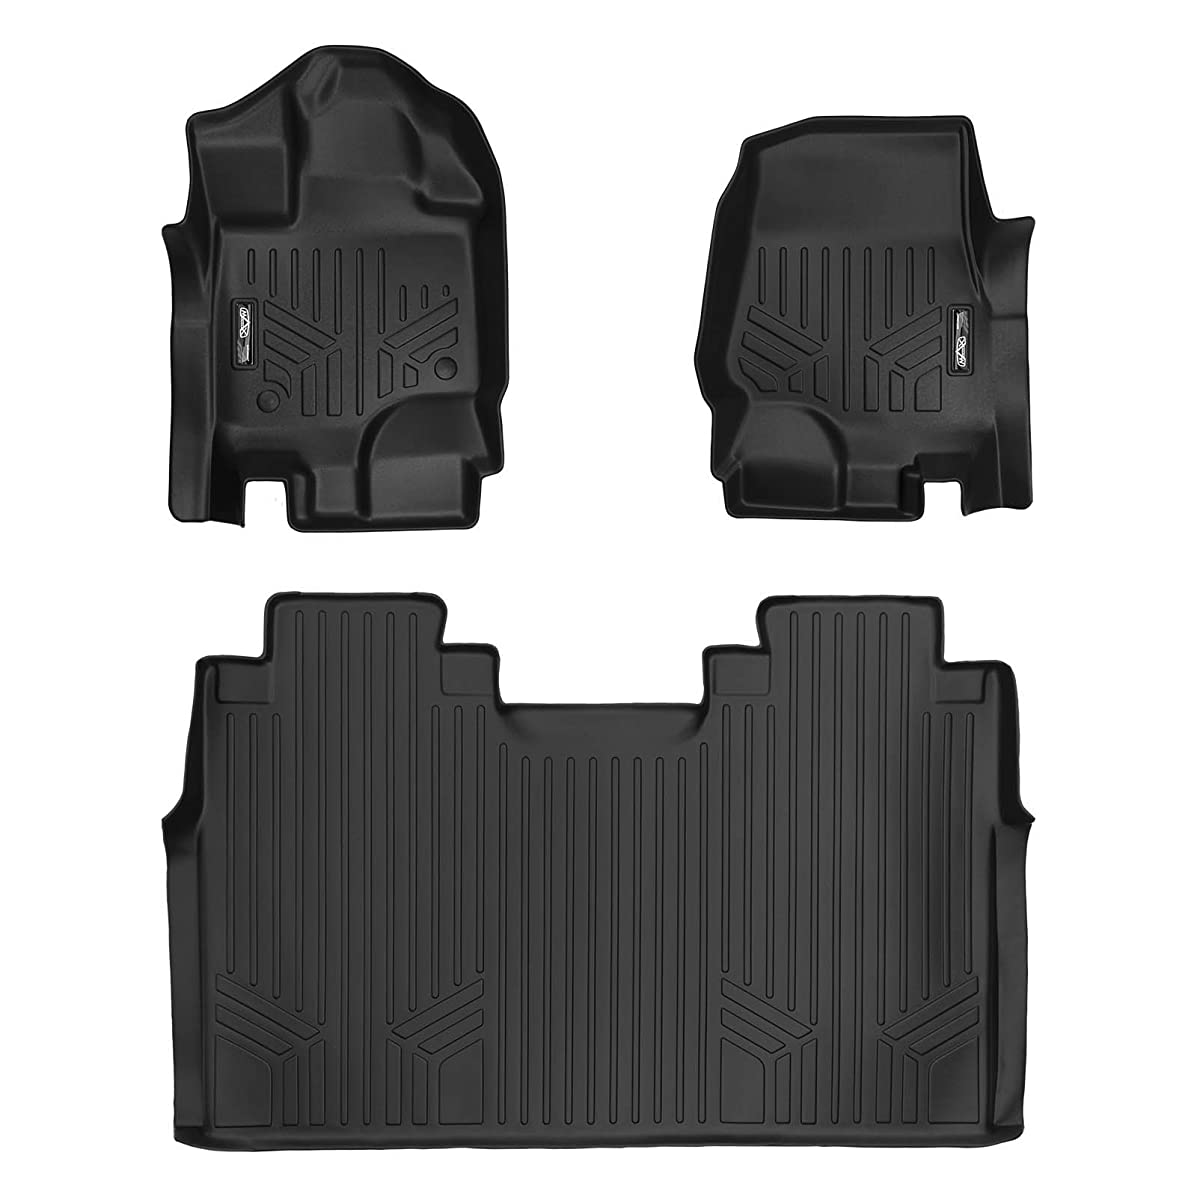 SMARTLINER Floor Mats 2 Row Liner Set Black for 2015-2018 Ford F-150 SuperCrew Cab with 1st Row Bench Seats